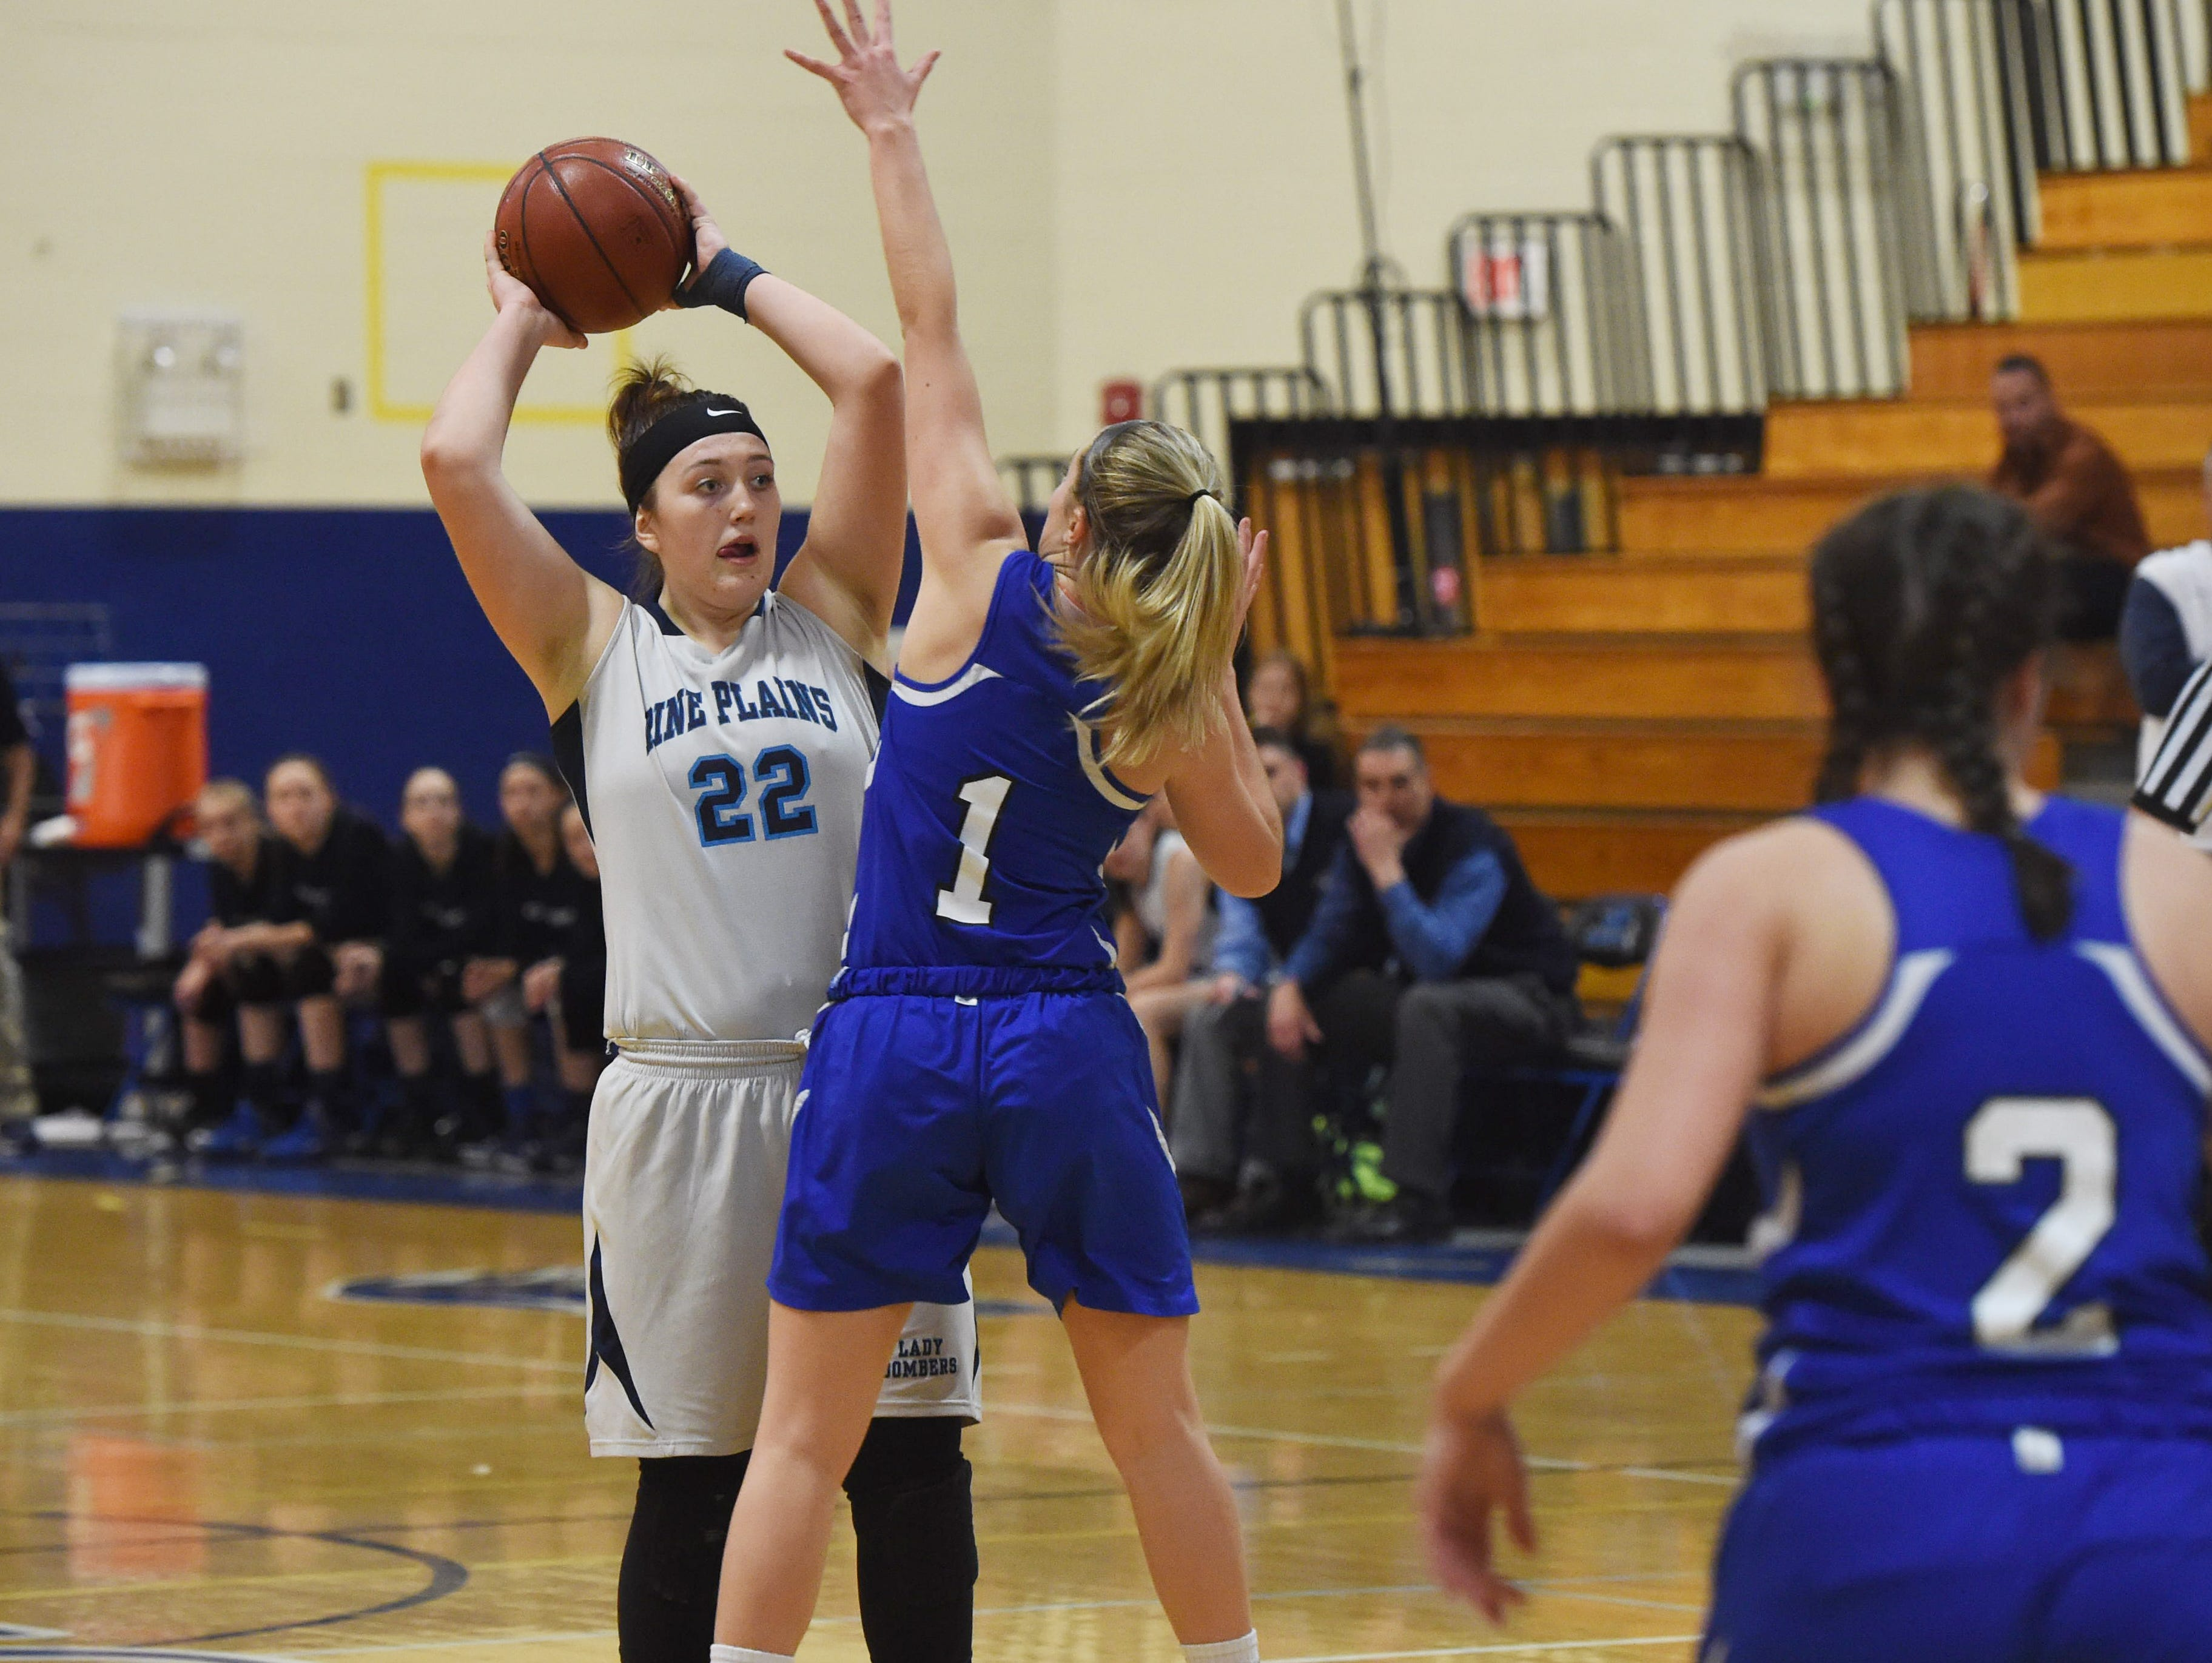 Pine Plains' Cathryn Simmons, left, looks for an open teammate during Friday's Section 9 championship game against Millbrook at Mount Saint Mary College in Newburgh.